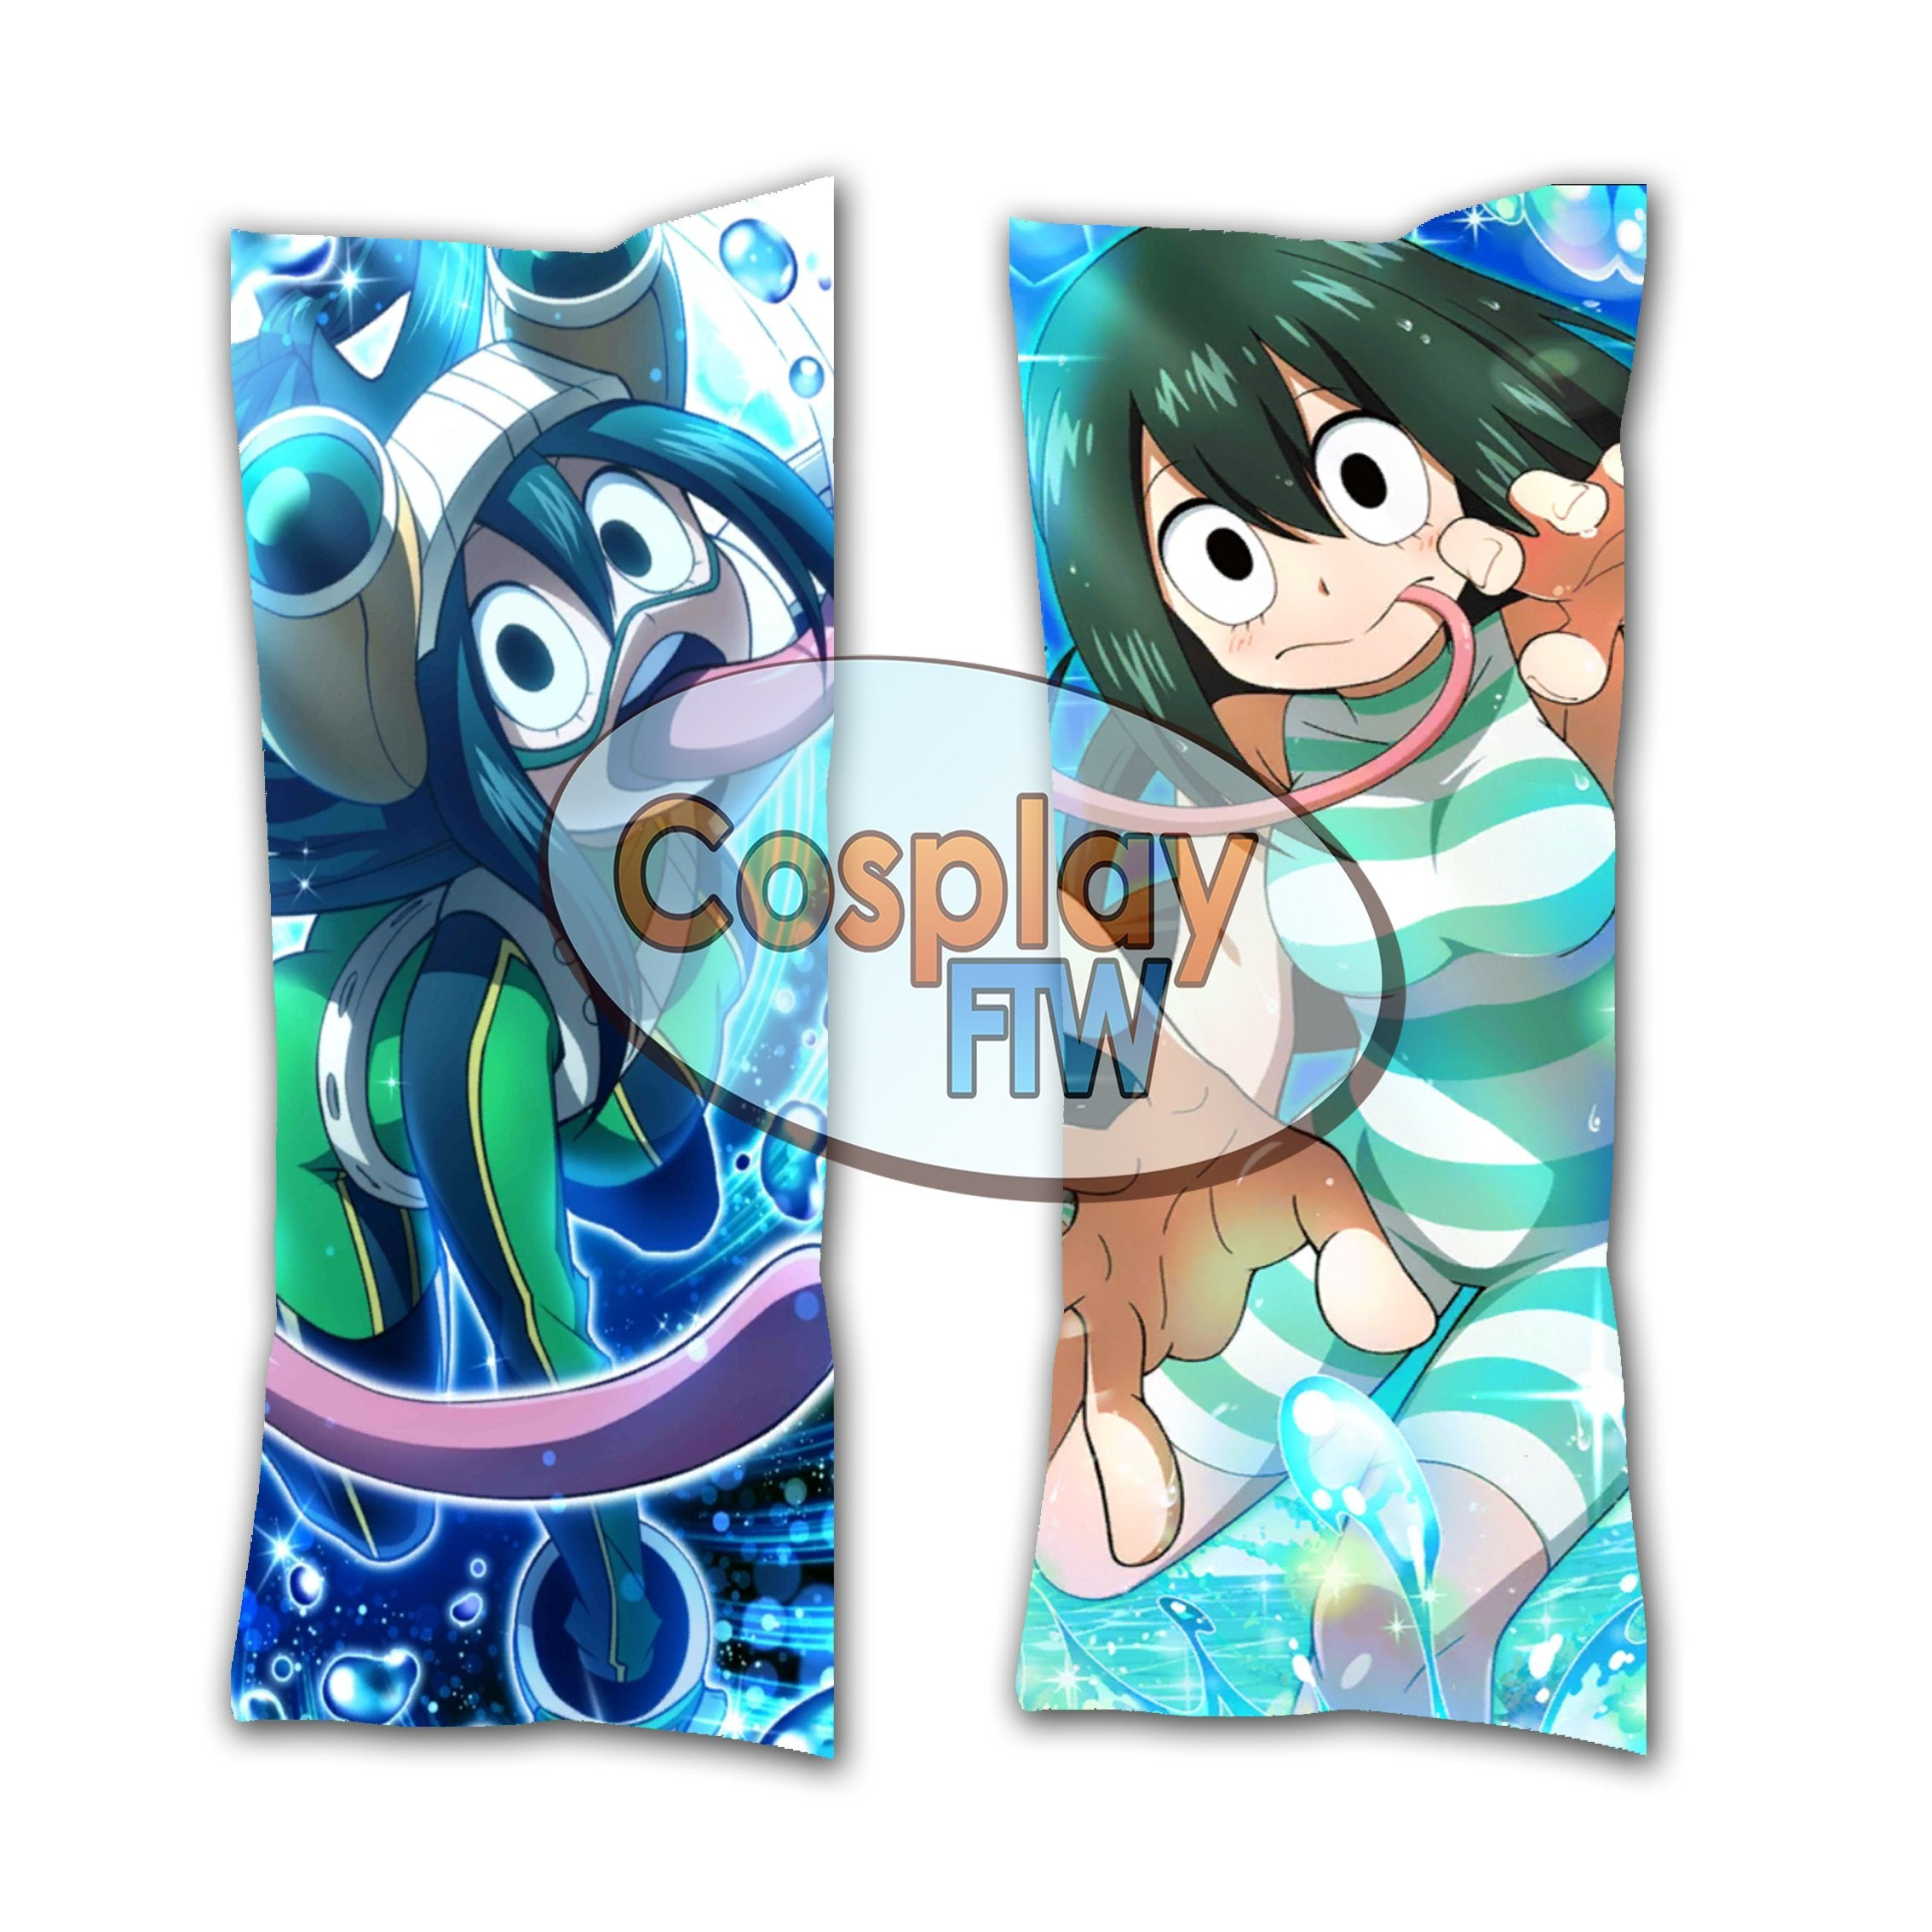 My Hero Academia Asui Tsuyu Dakimakura// Anime Body Pillow // Valentines Day Gift